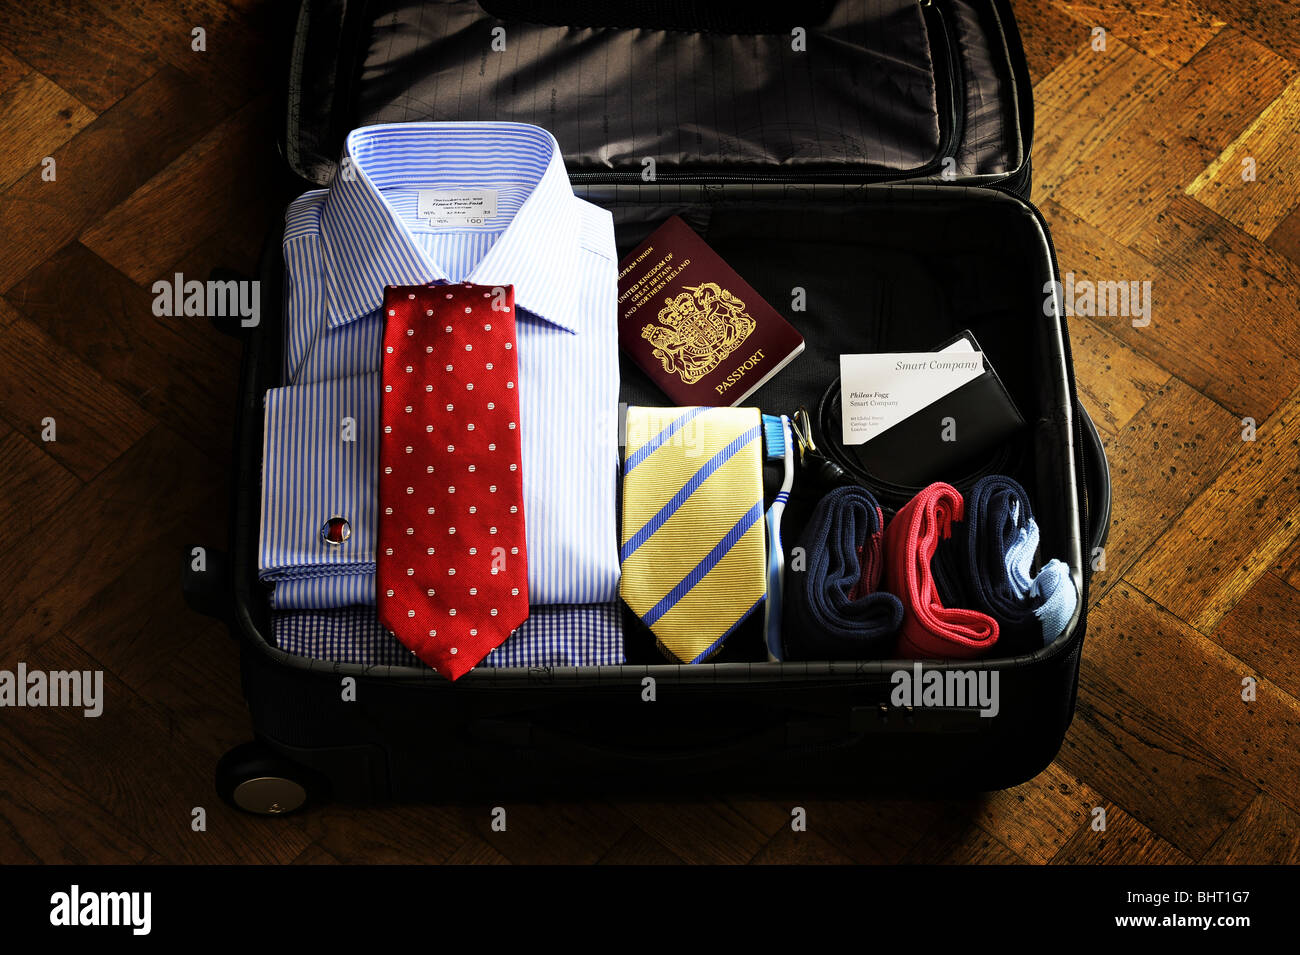 A suitcase containing travel items for a man - Stock Image